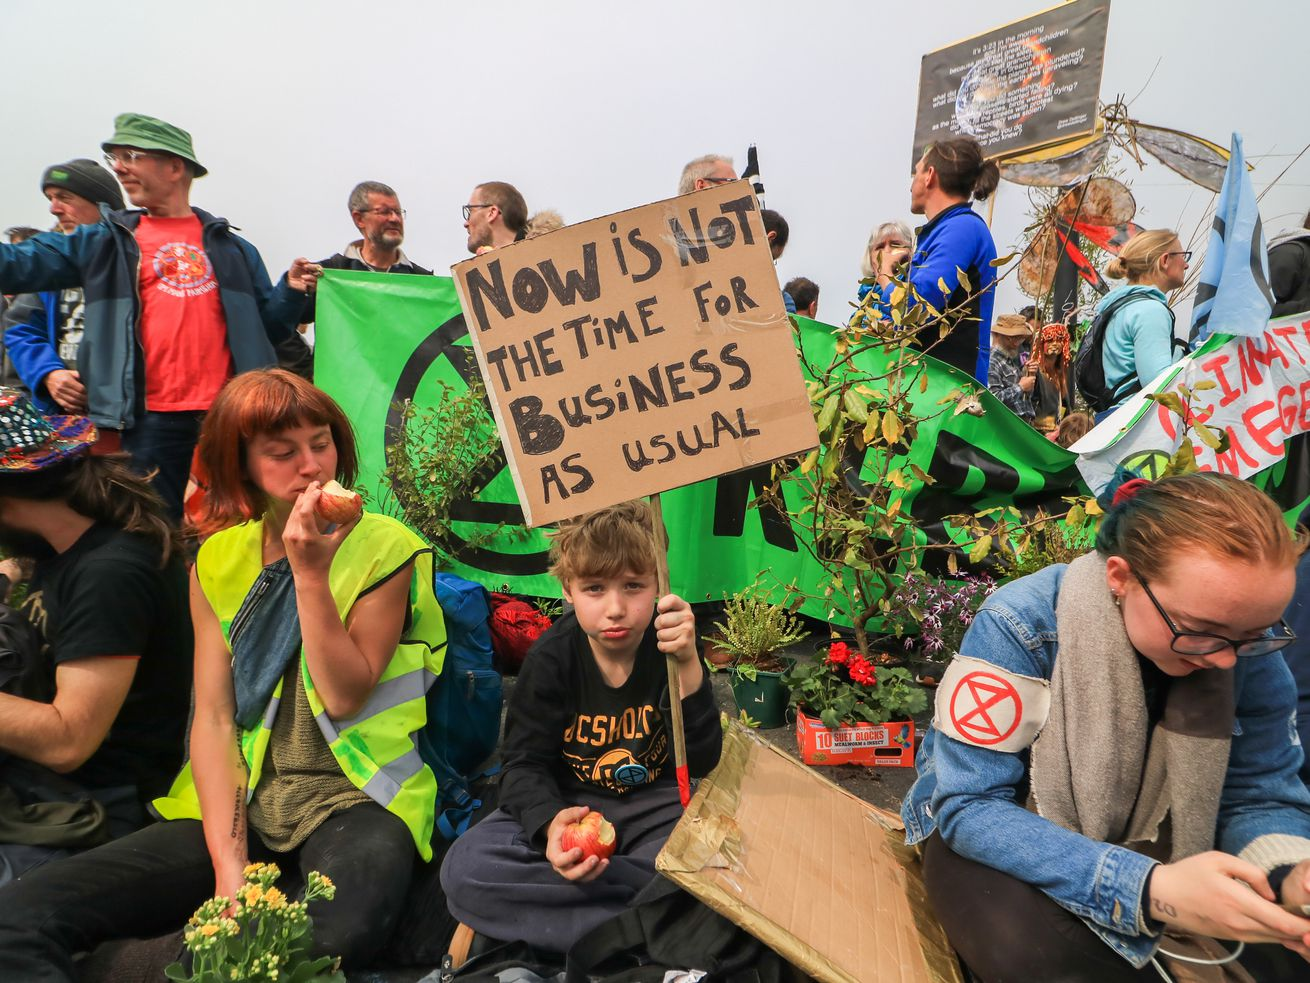 Climate activists blocked Waterloo Bridge on April 16 as part of the Extinction Rebellion movement in London.